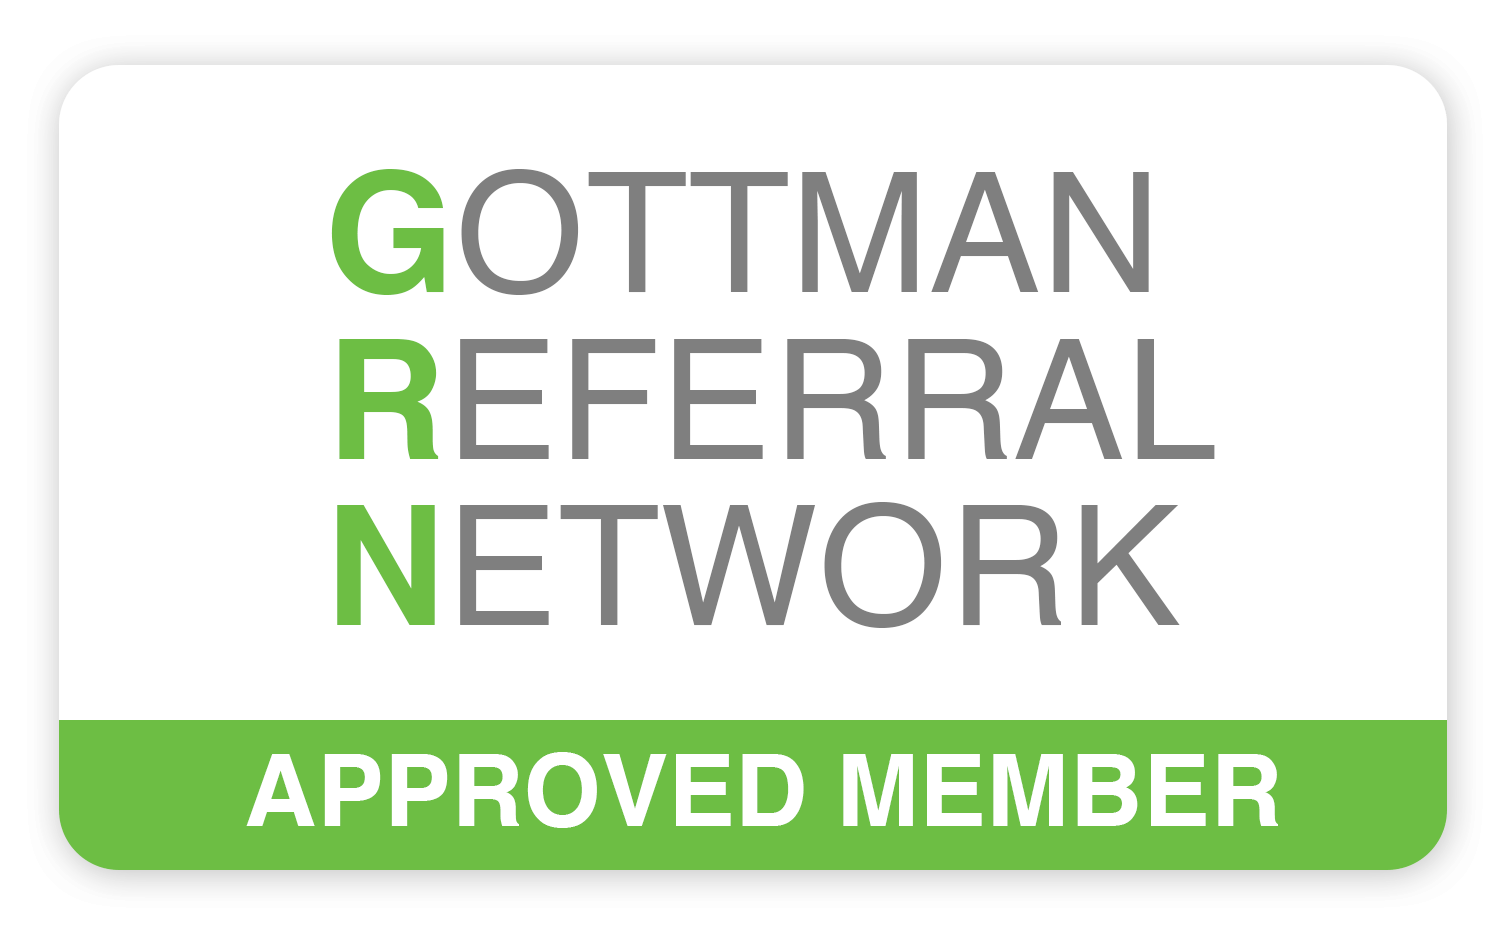 Kristen Hullinger's profile on the Gottman Referral Network